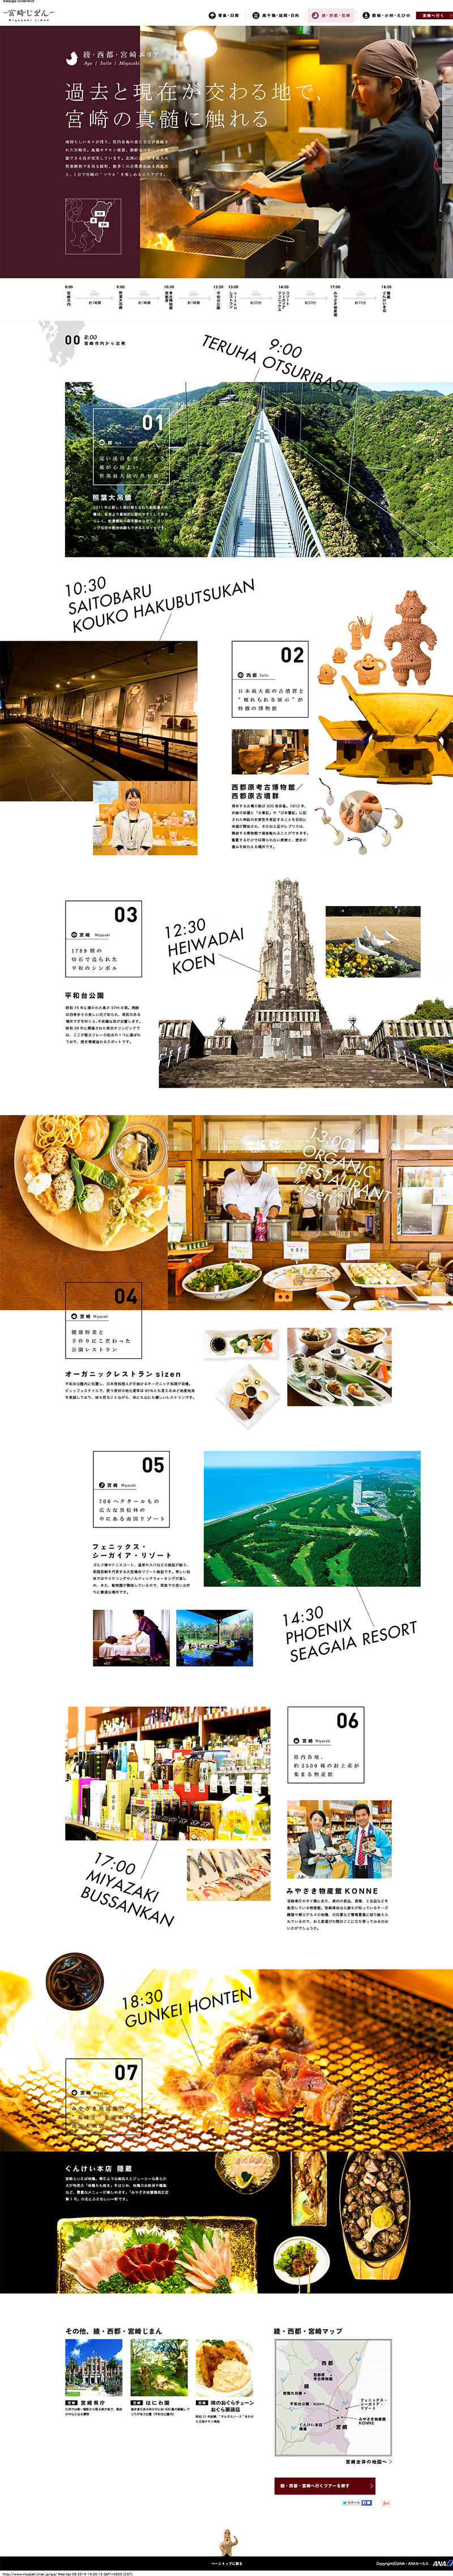 http://www.miyazaki-jiman.jp // Hi Friends, want to see more pins like this? Make sure to follow our board @moirestudiosjkt #webdesign